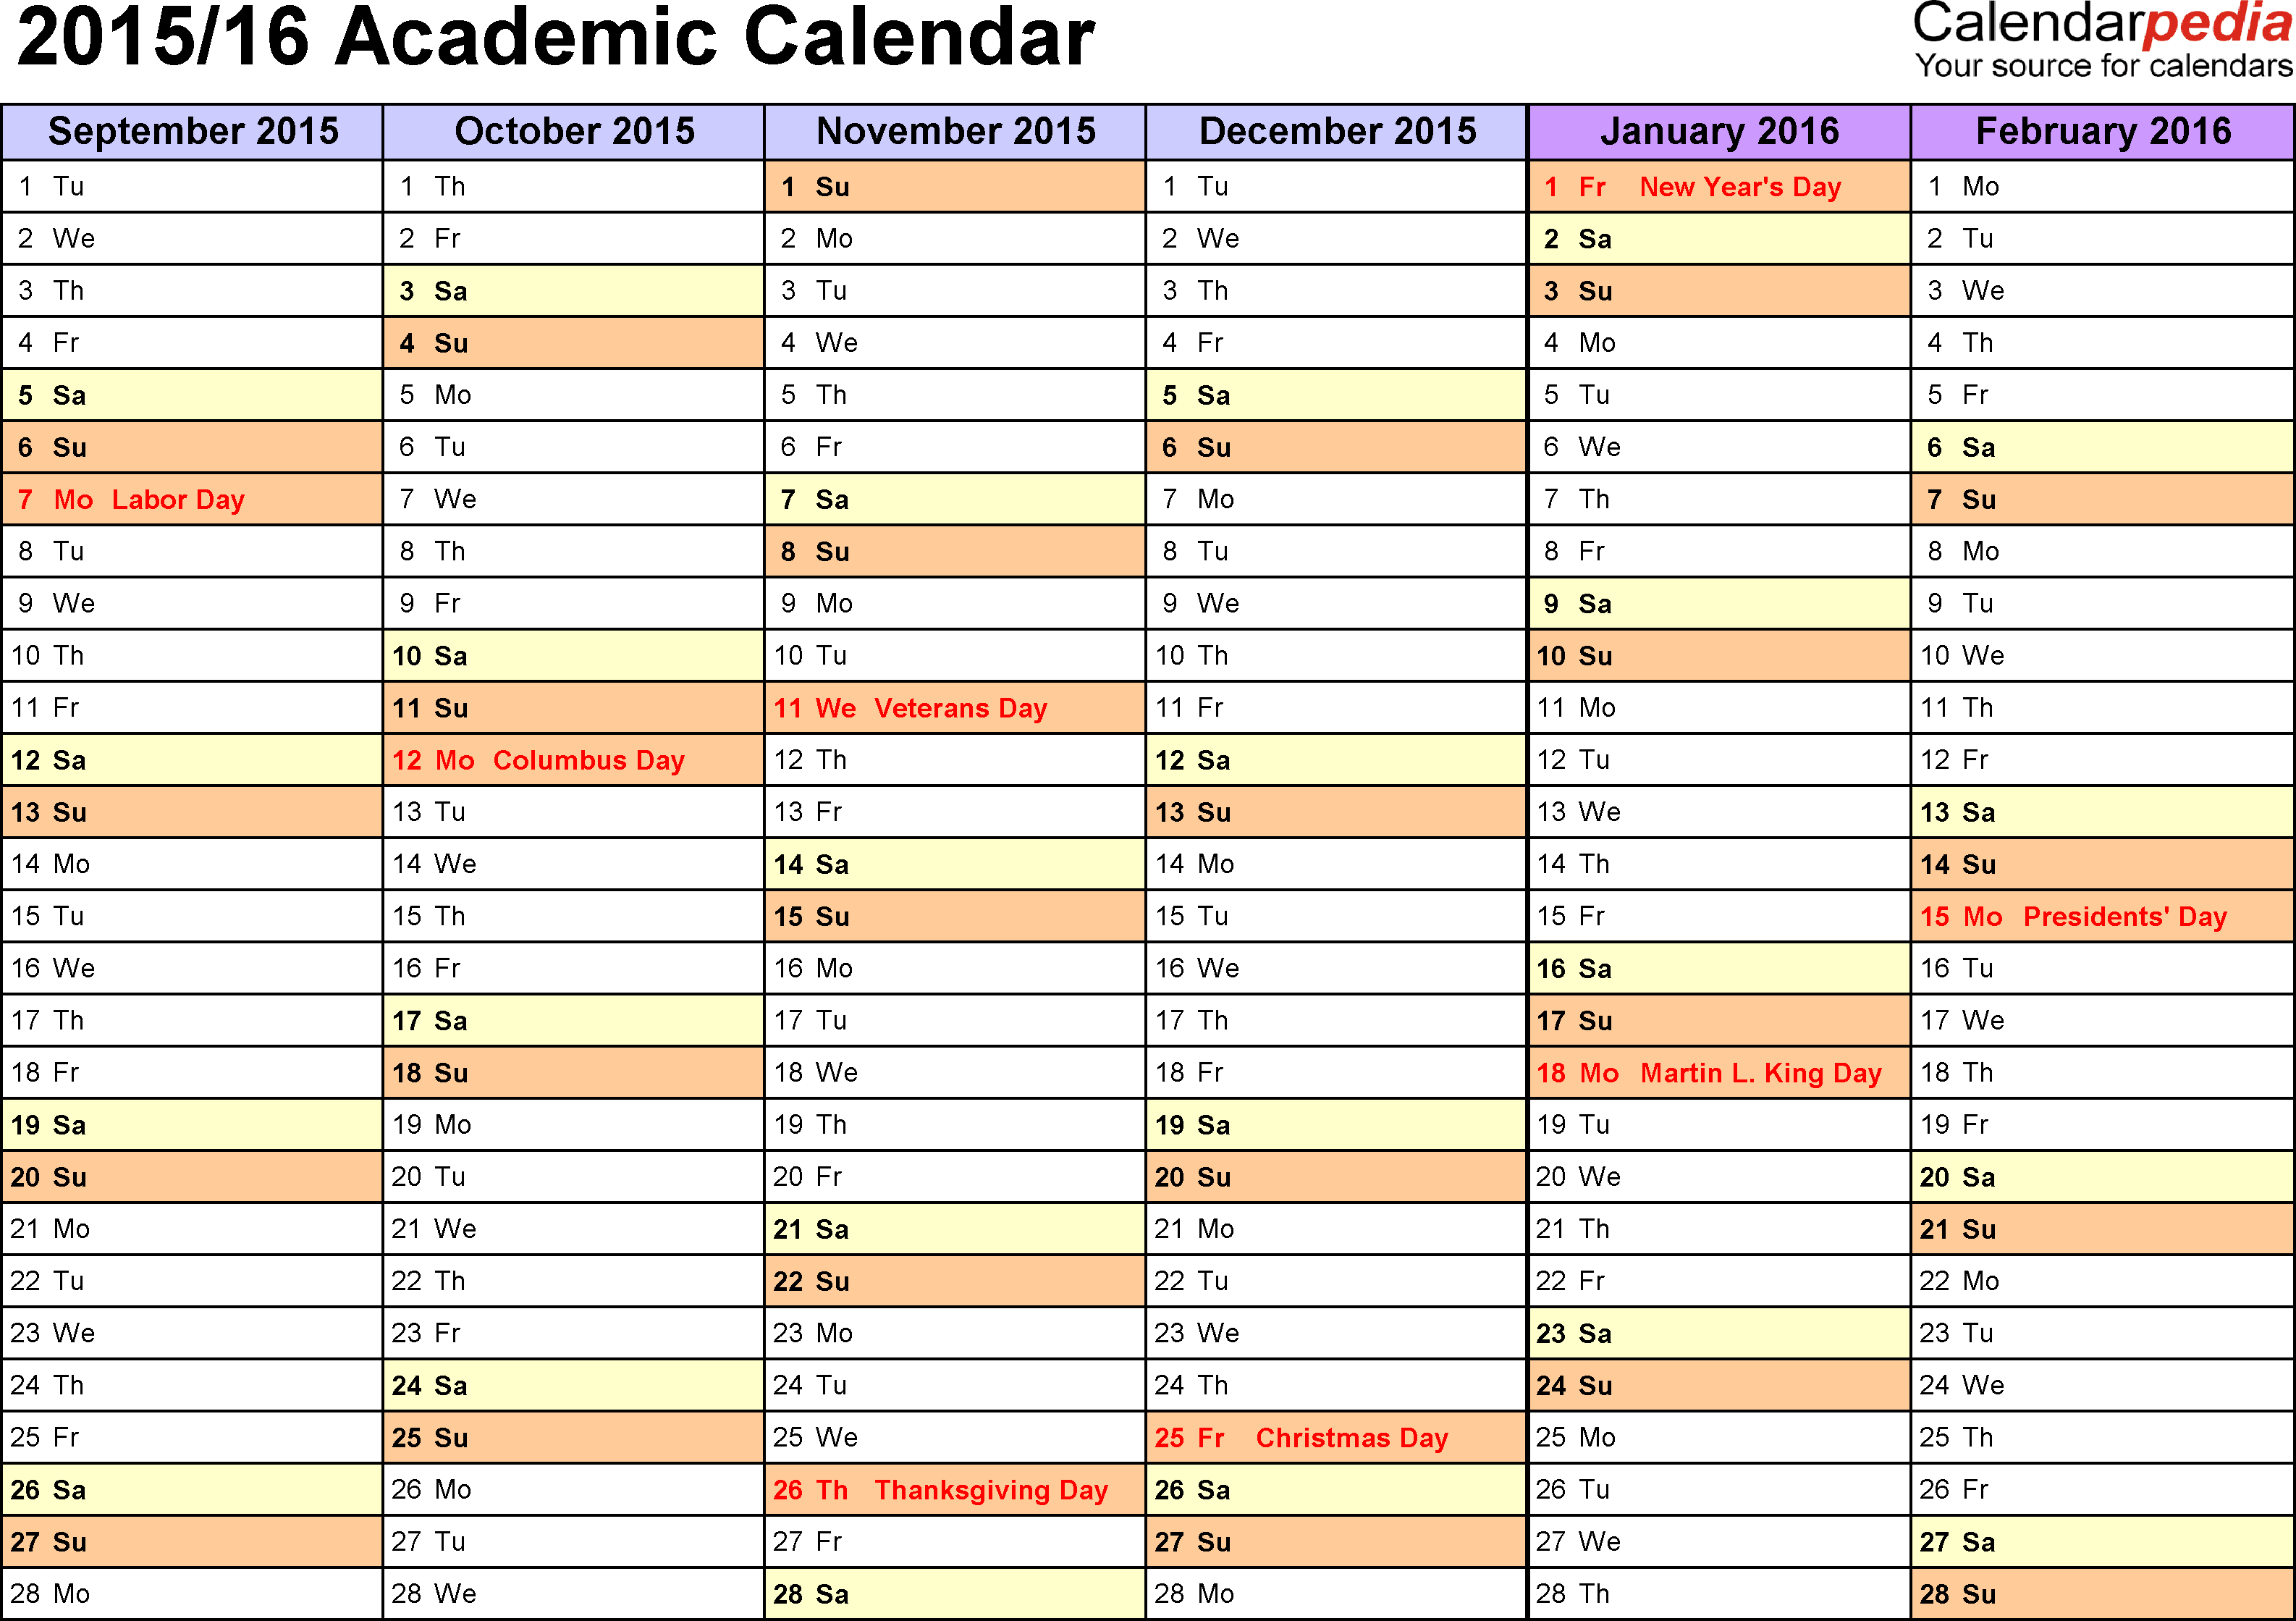 Template 3: Academic calendar 2015/16 for PDF, landscape orientation, months horizontally, 2 pages